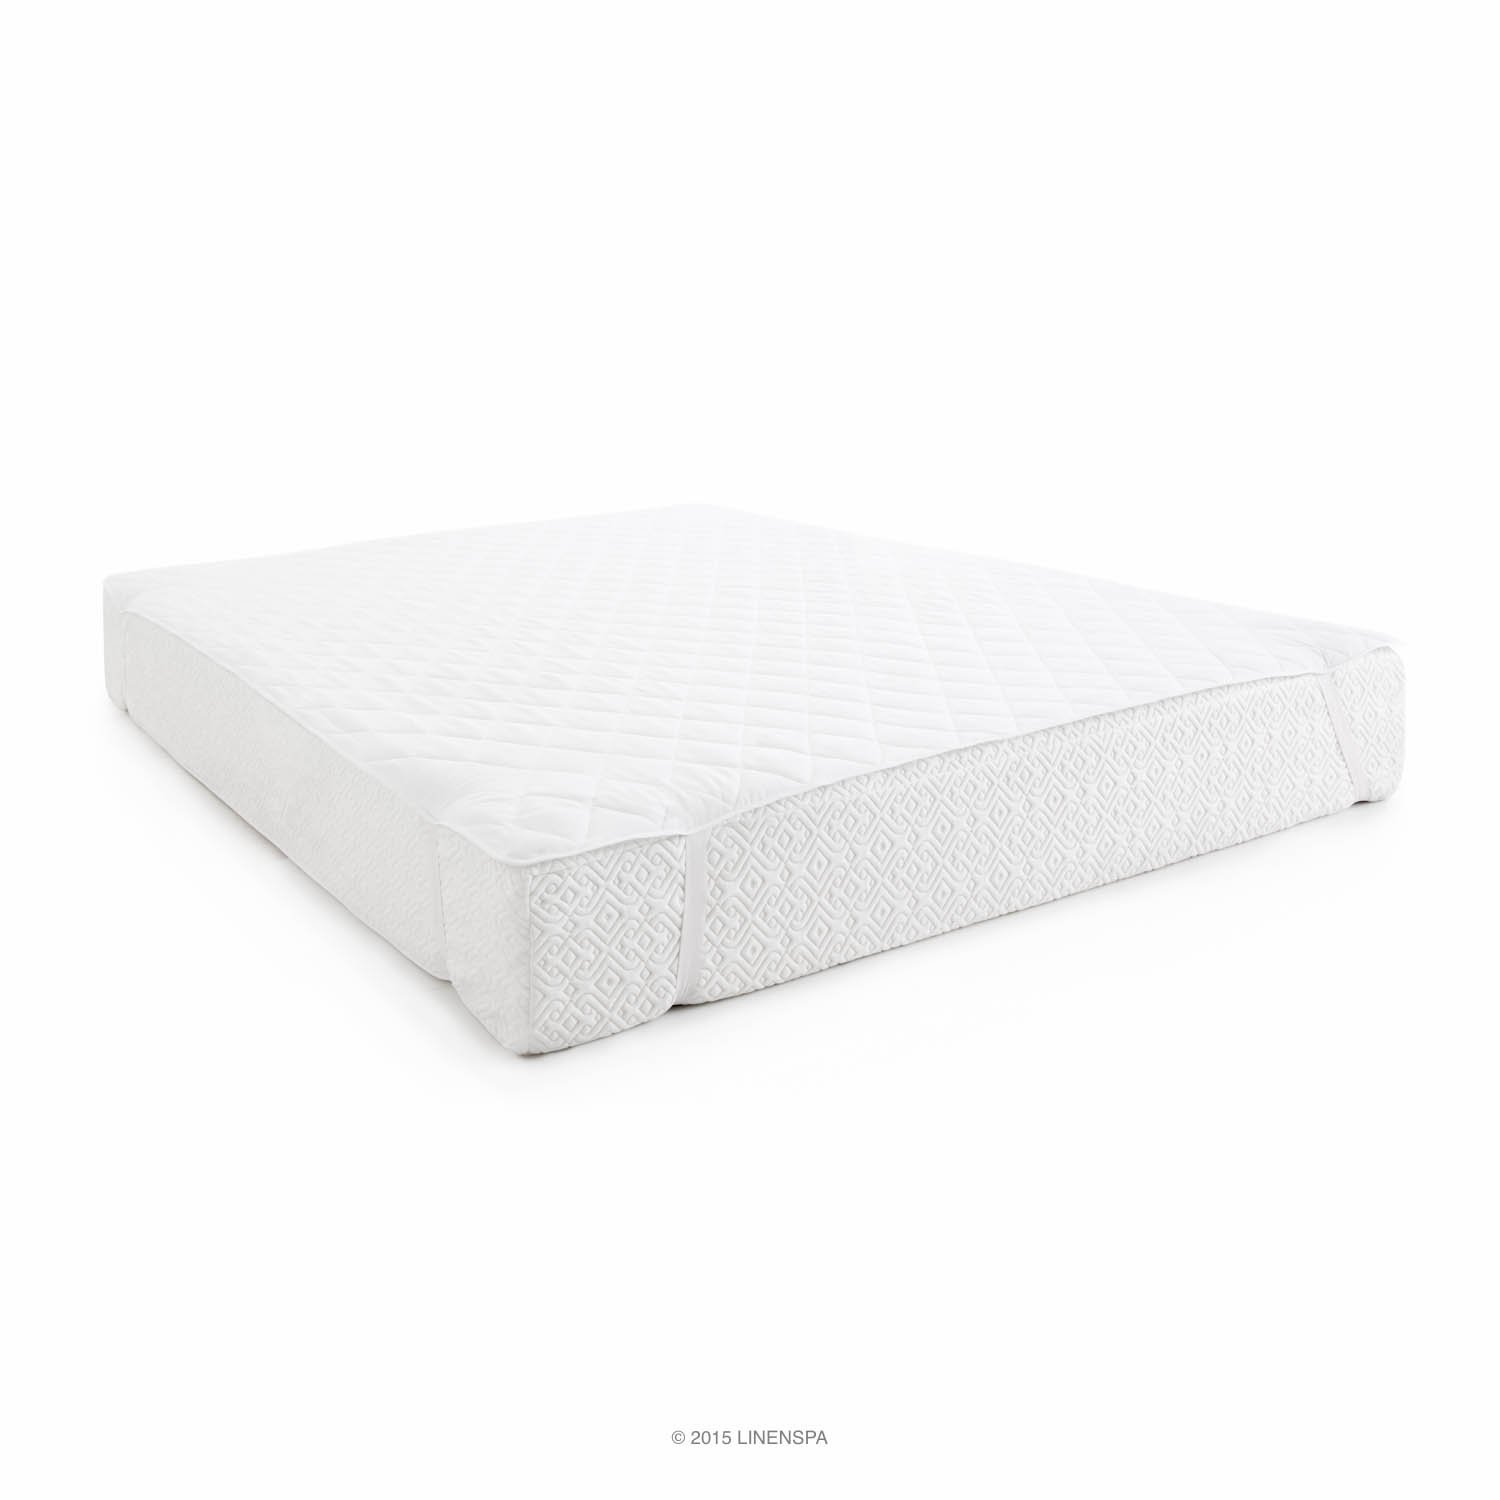 LINENSPA Waterproof Mattress Pad with Quilted Microfiber Cover - Twin